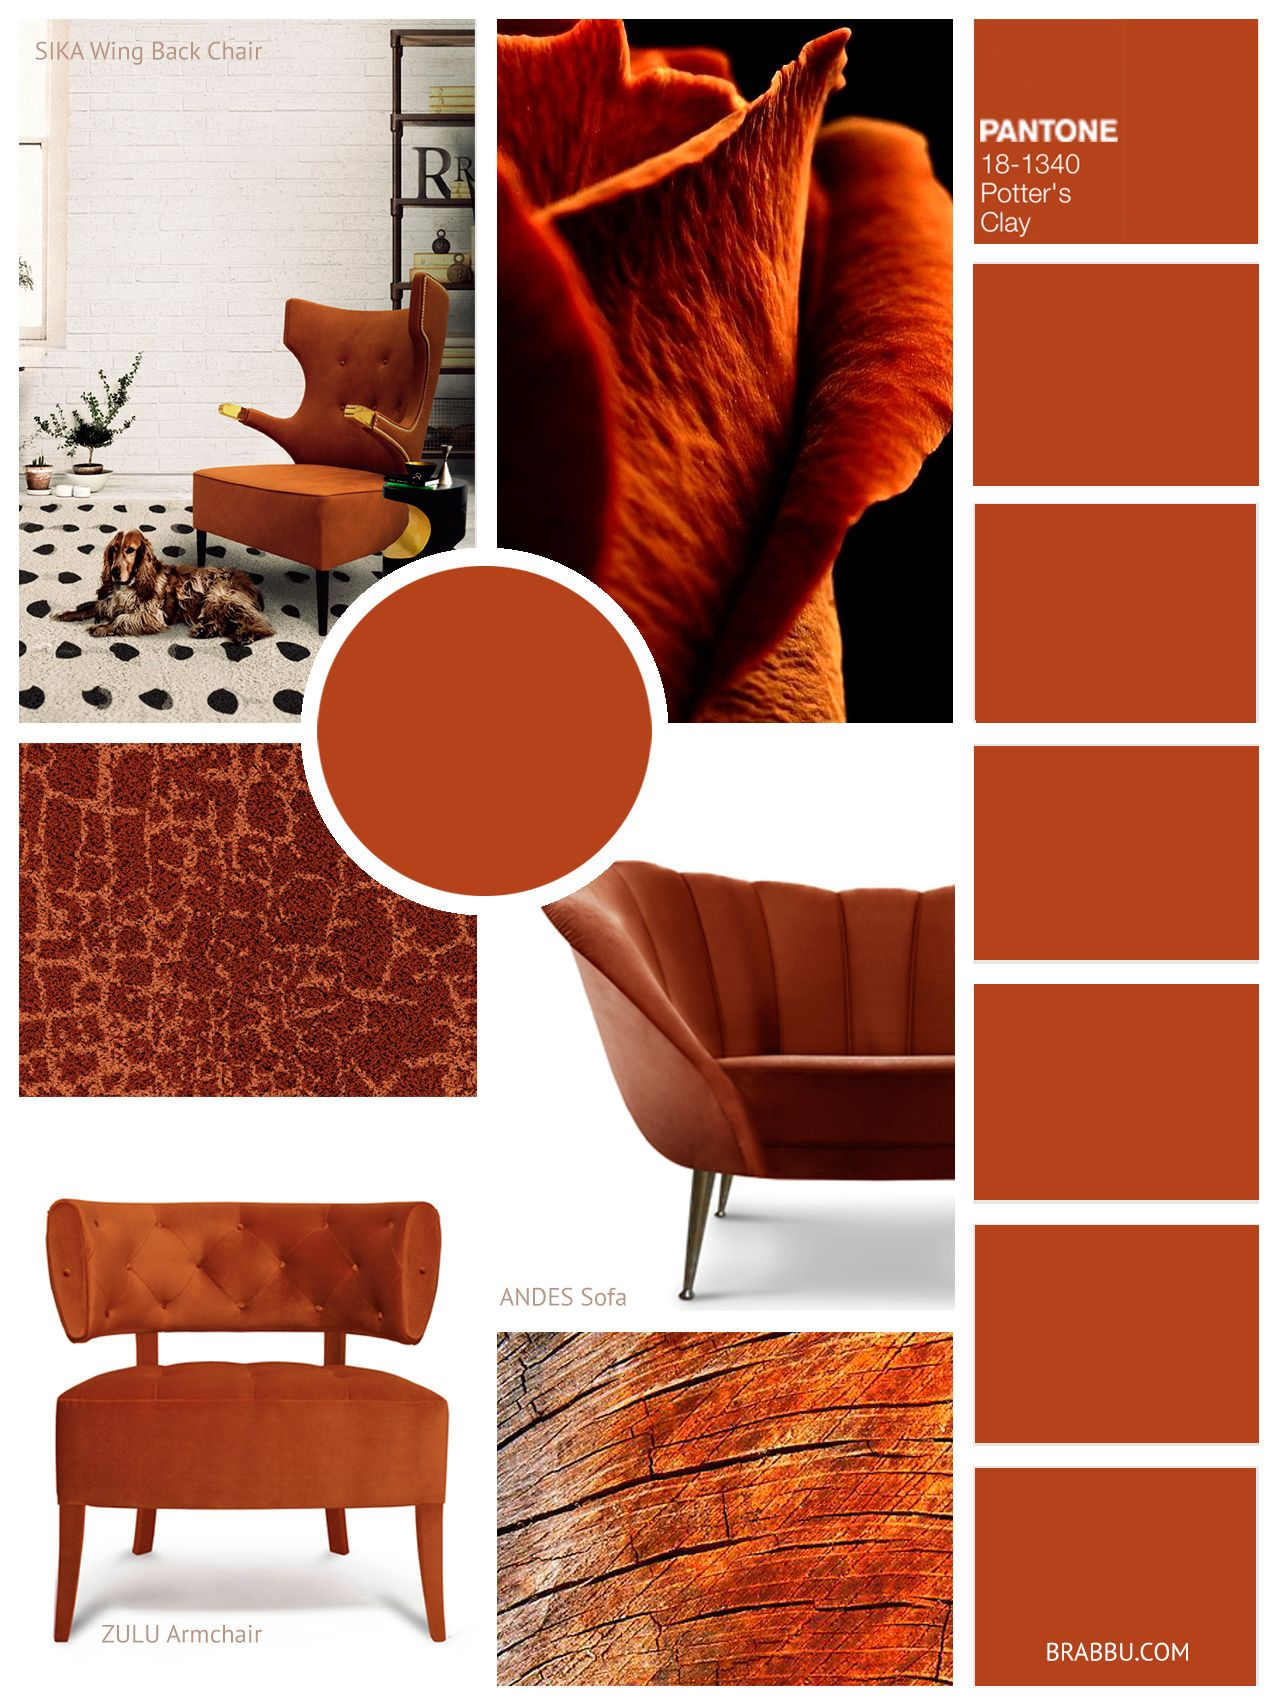 Colour trends for next season by brabbu potters clay - 2017 pantone view home interiors palettes ...